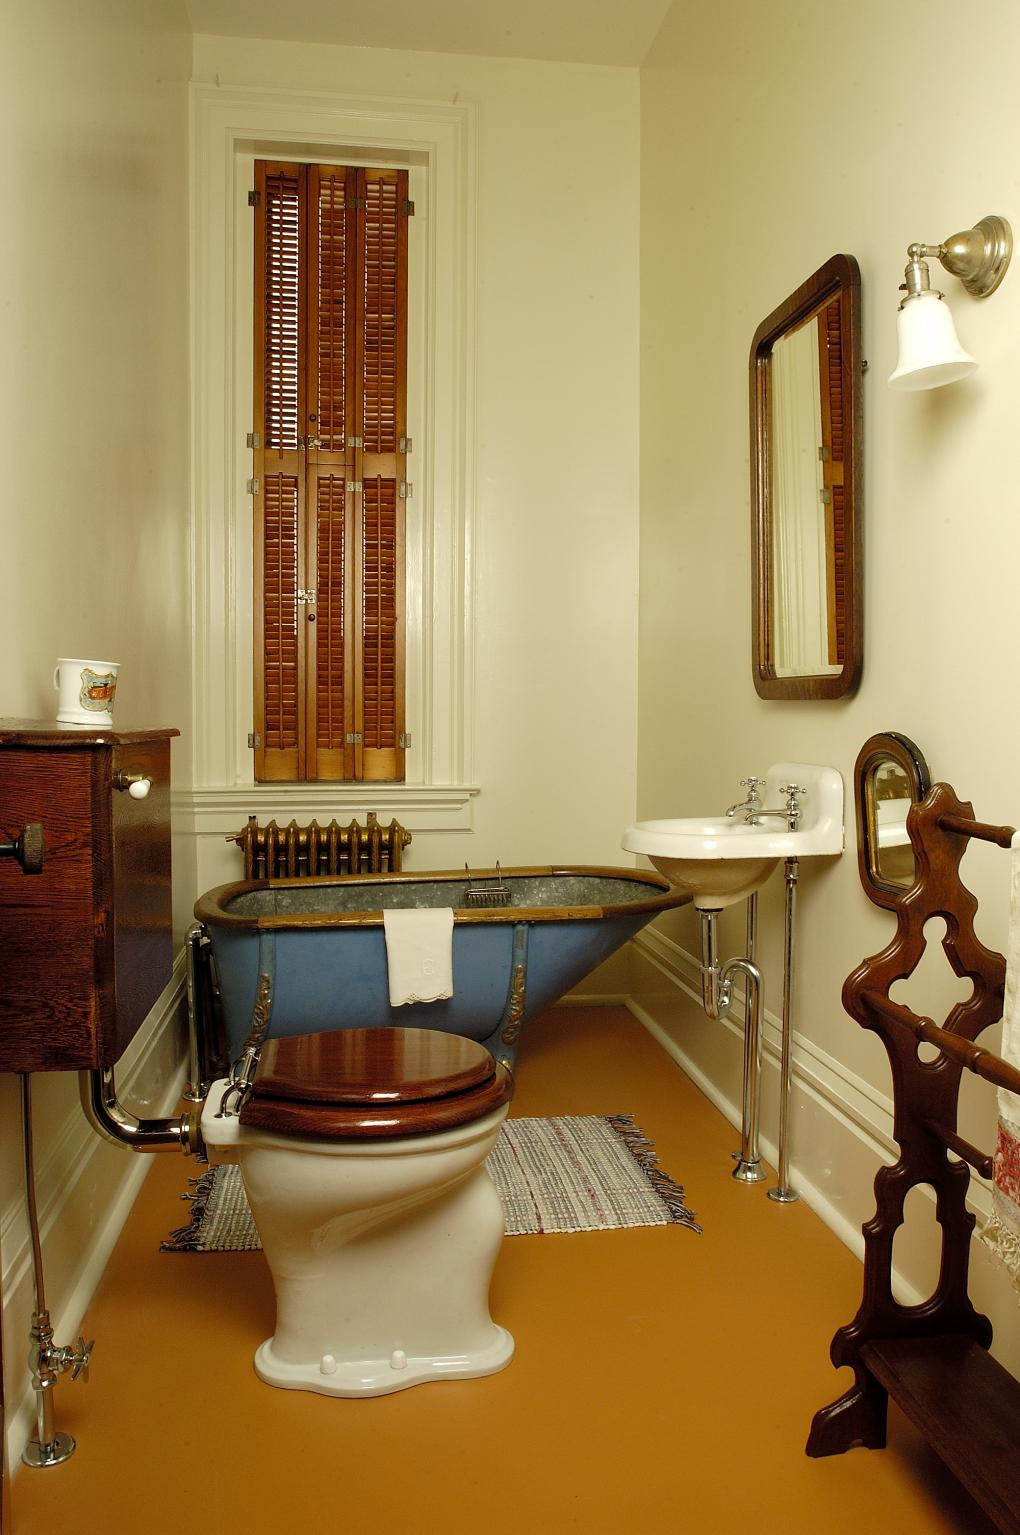 Upstairs bathroom, Lizzie Martin's bedroom, Martin-Mitchell Mansion